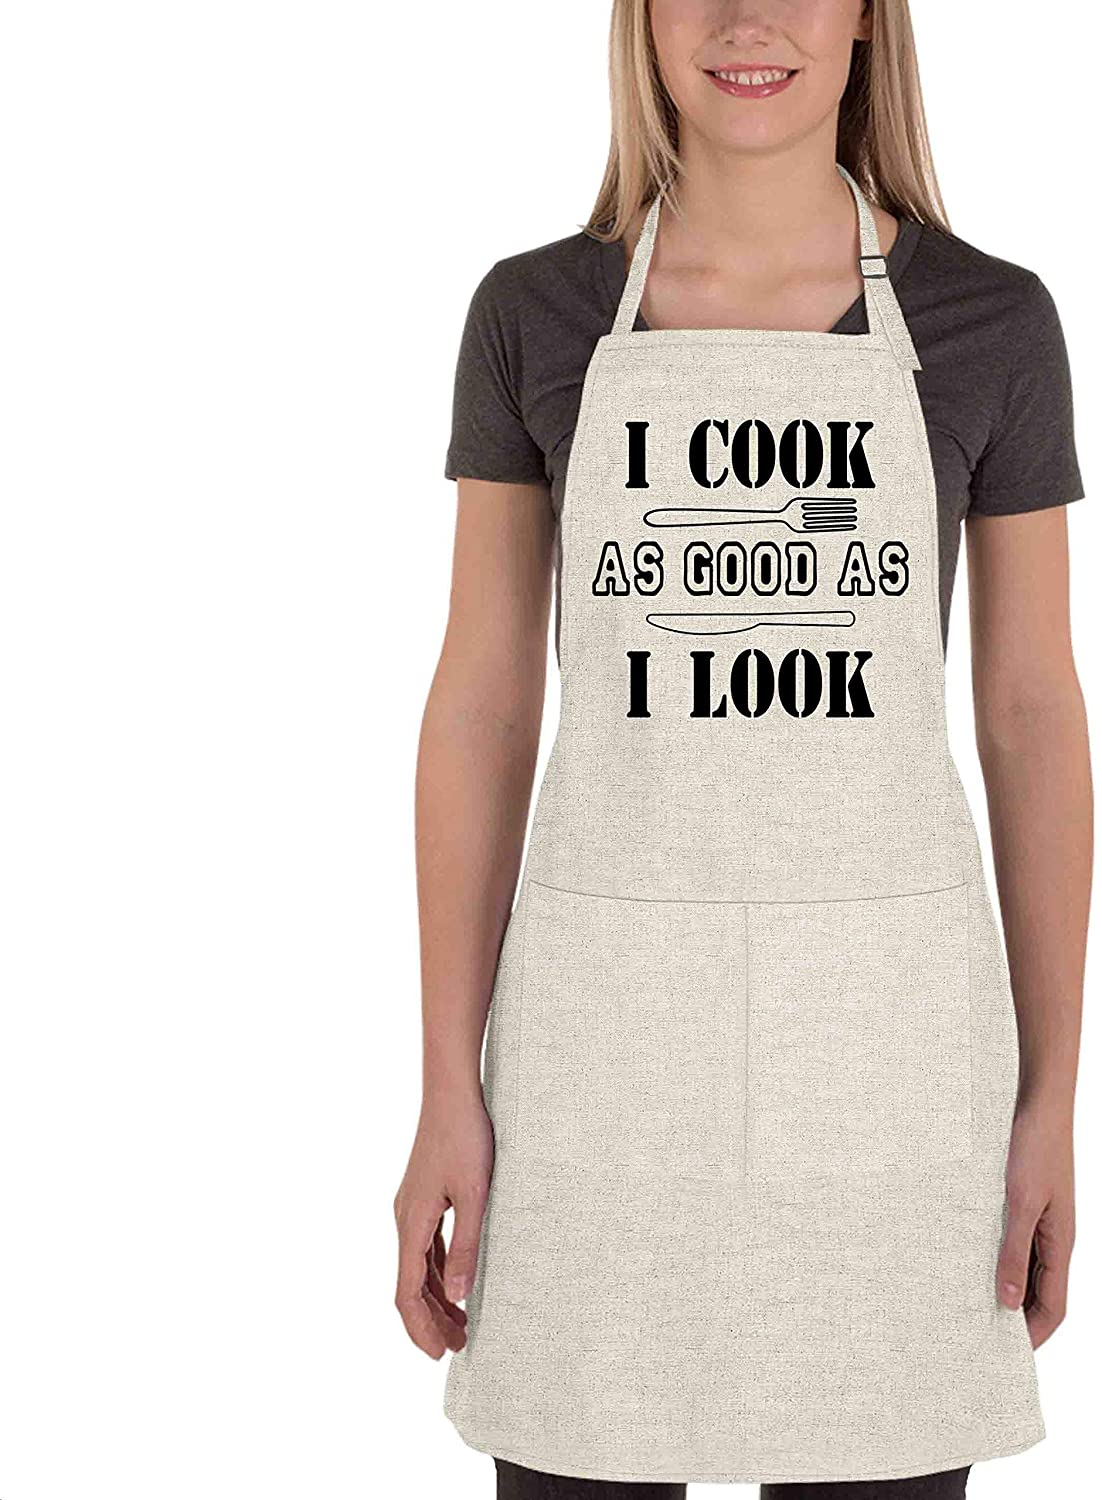 Adjustable Bib Apron for Women - I cook as good as I look - Funny Apron for Chef, Kitchen, Home, Restaurant, Cafe, Cooking, Baking, Gardening